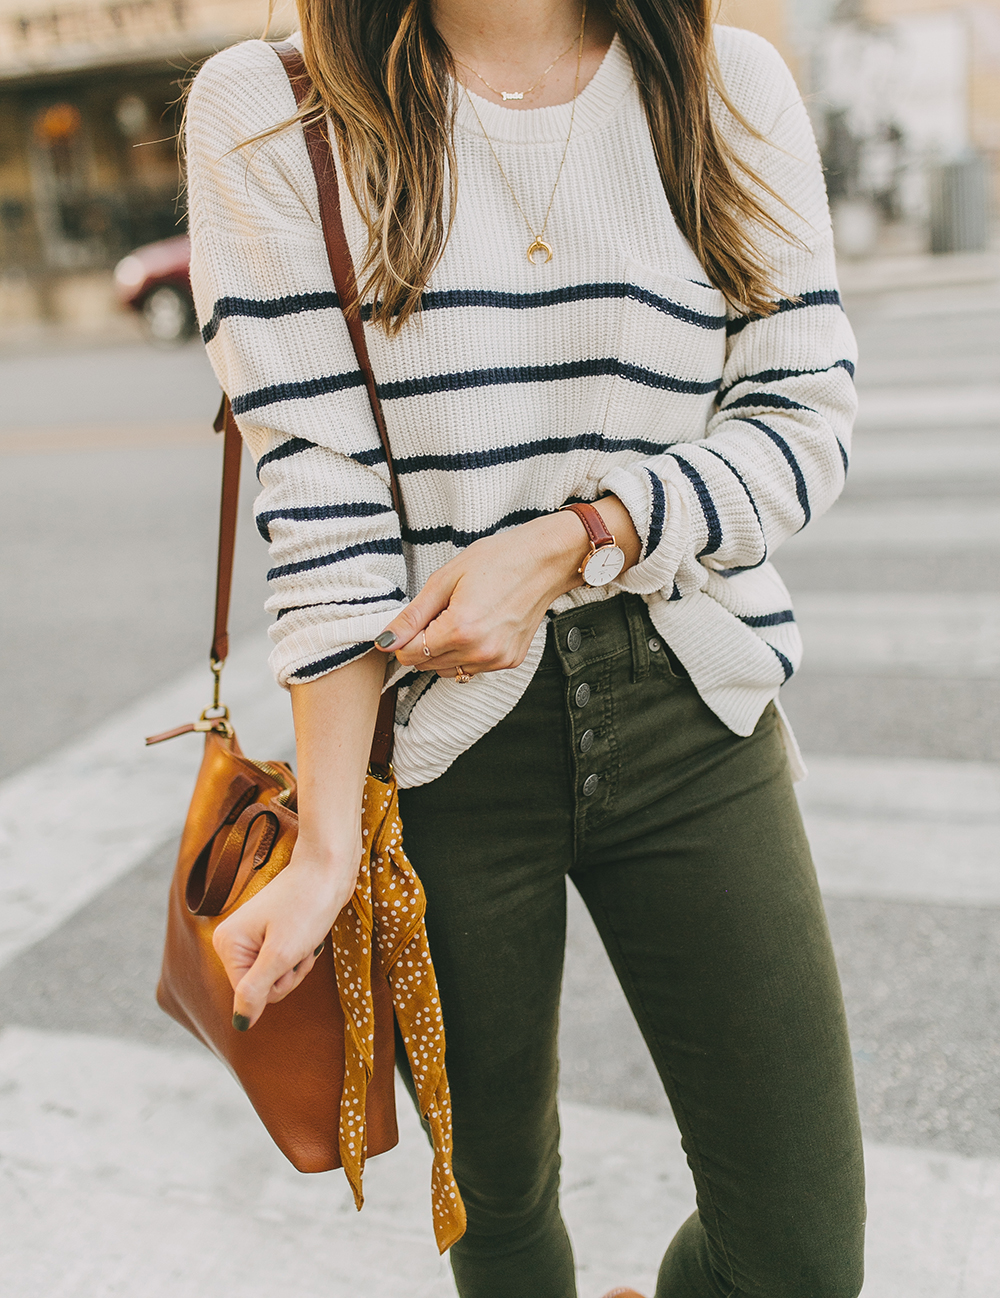 livvyland-blog-olivia-watson-austin-texas-fashion-lifestyle-blogger-madewell-olive-skinny-jeans-striped-sweater-trunk-club-review-3